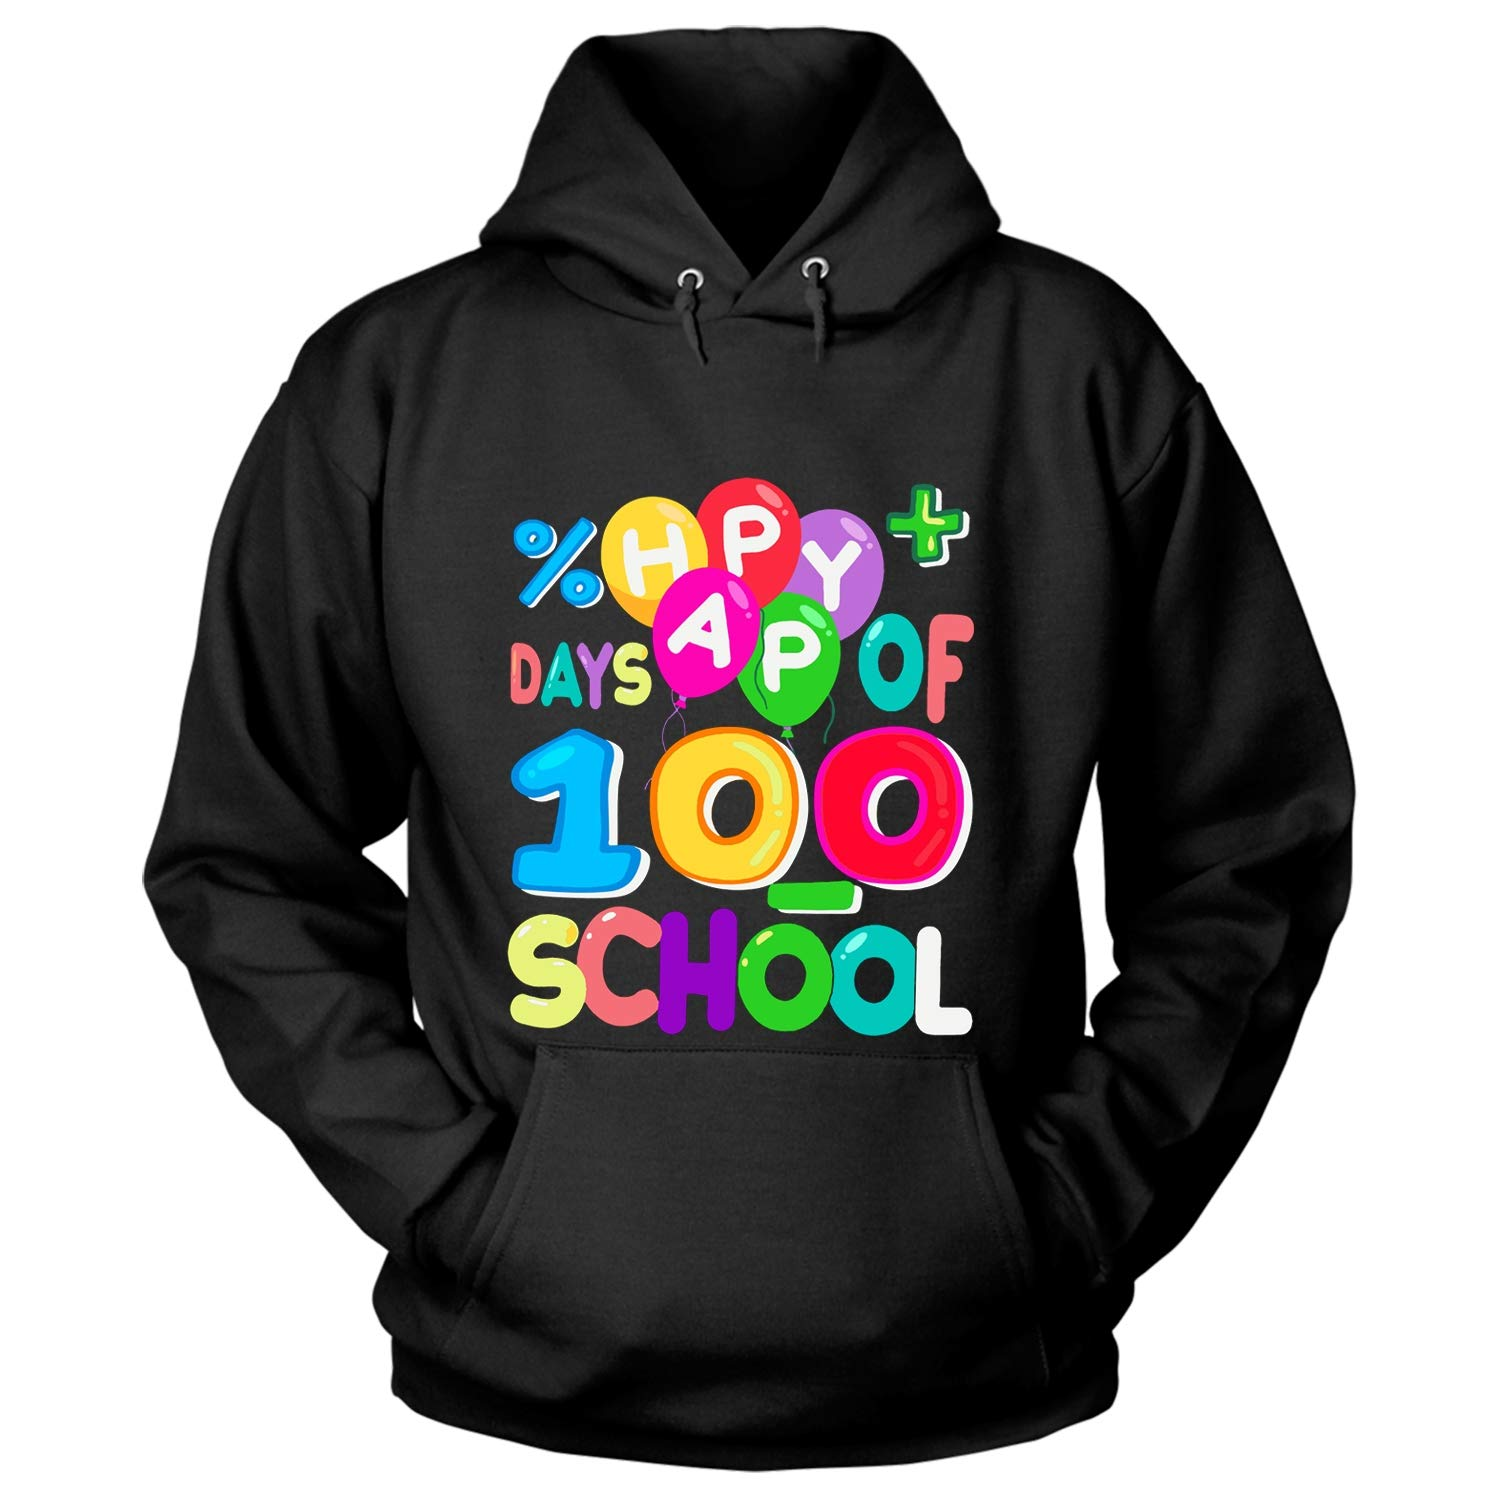 100th Day Collections T Shirt Happy 100 Days Of School T Shirt 3093